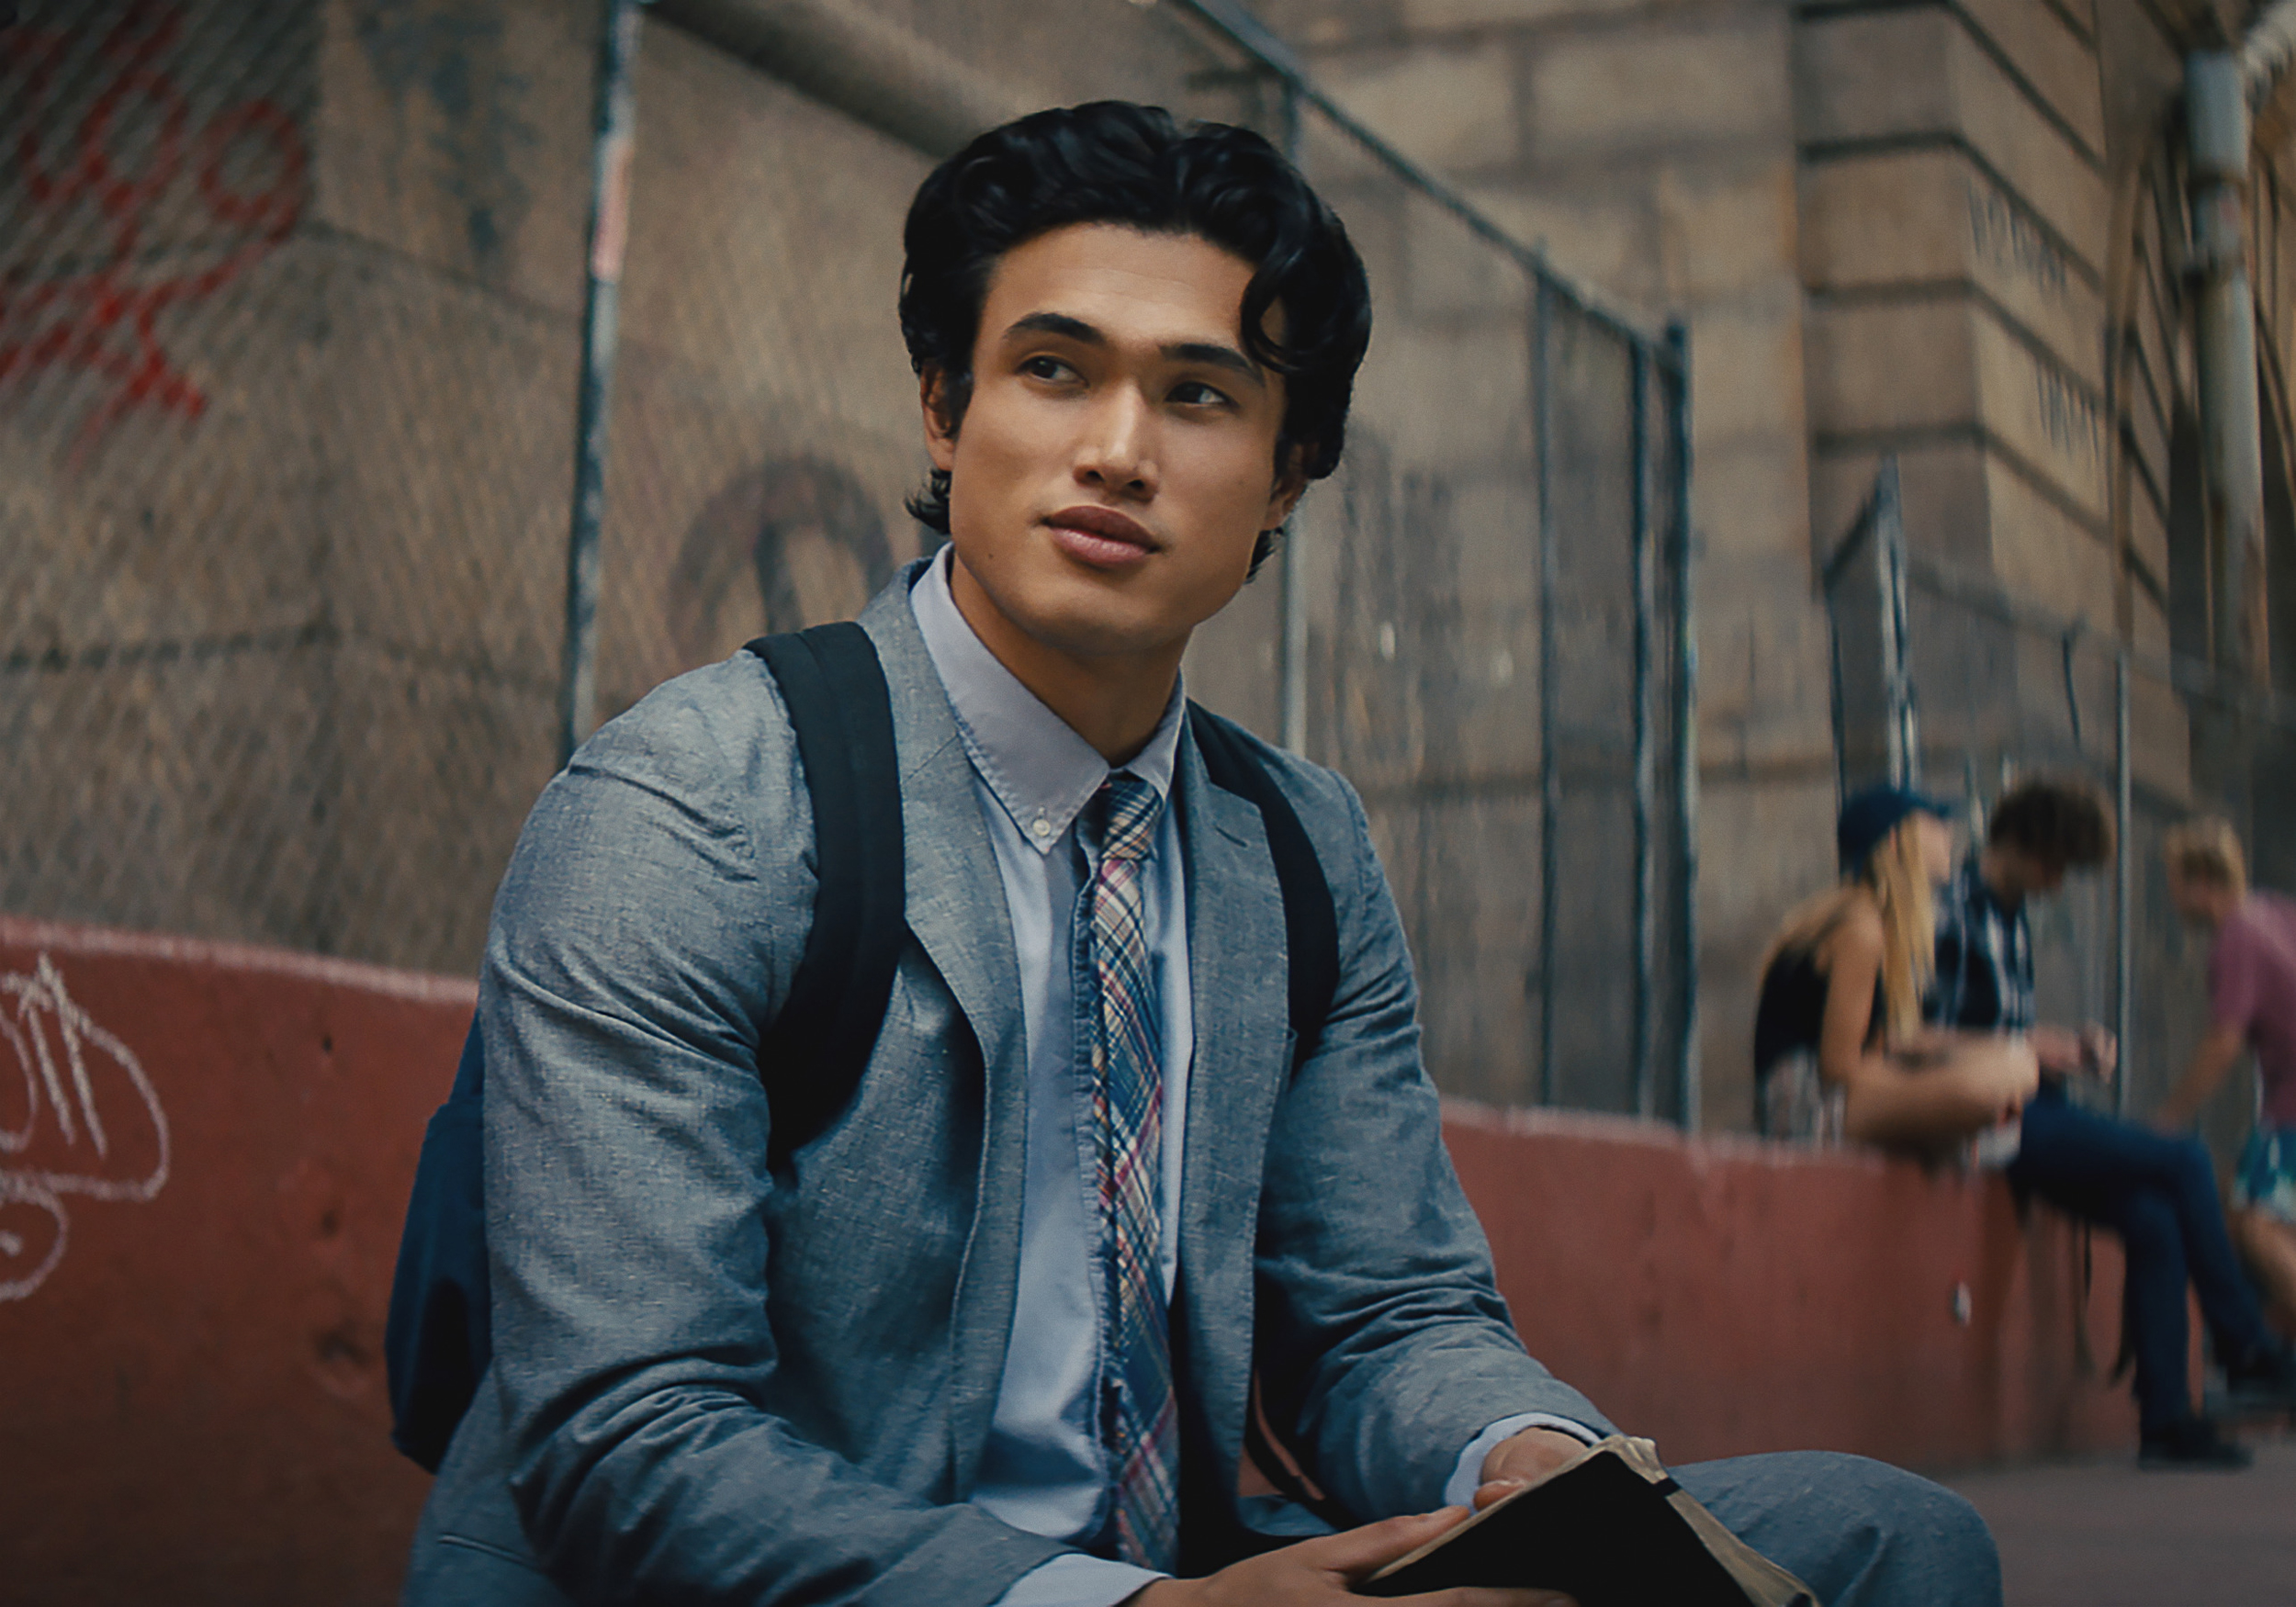 In-his-first-feature-film,-actor-Charles-Melton-is-learning-to-'trust-the-process'